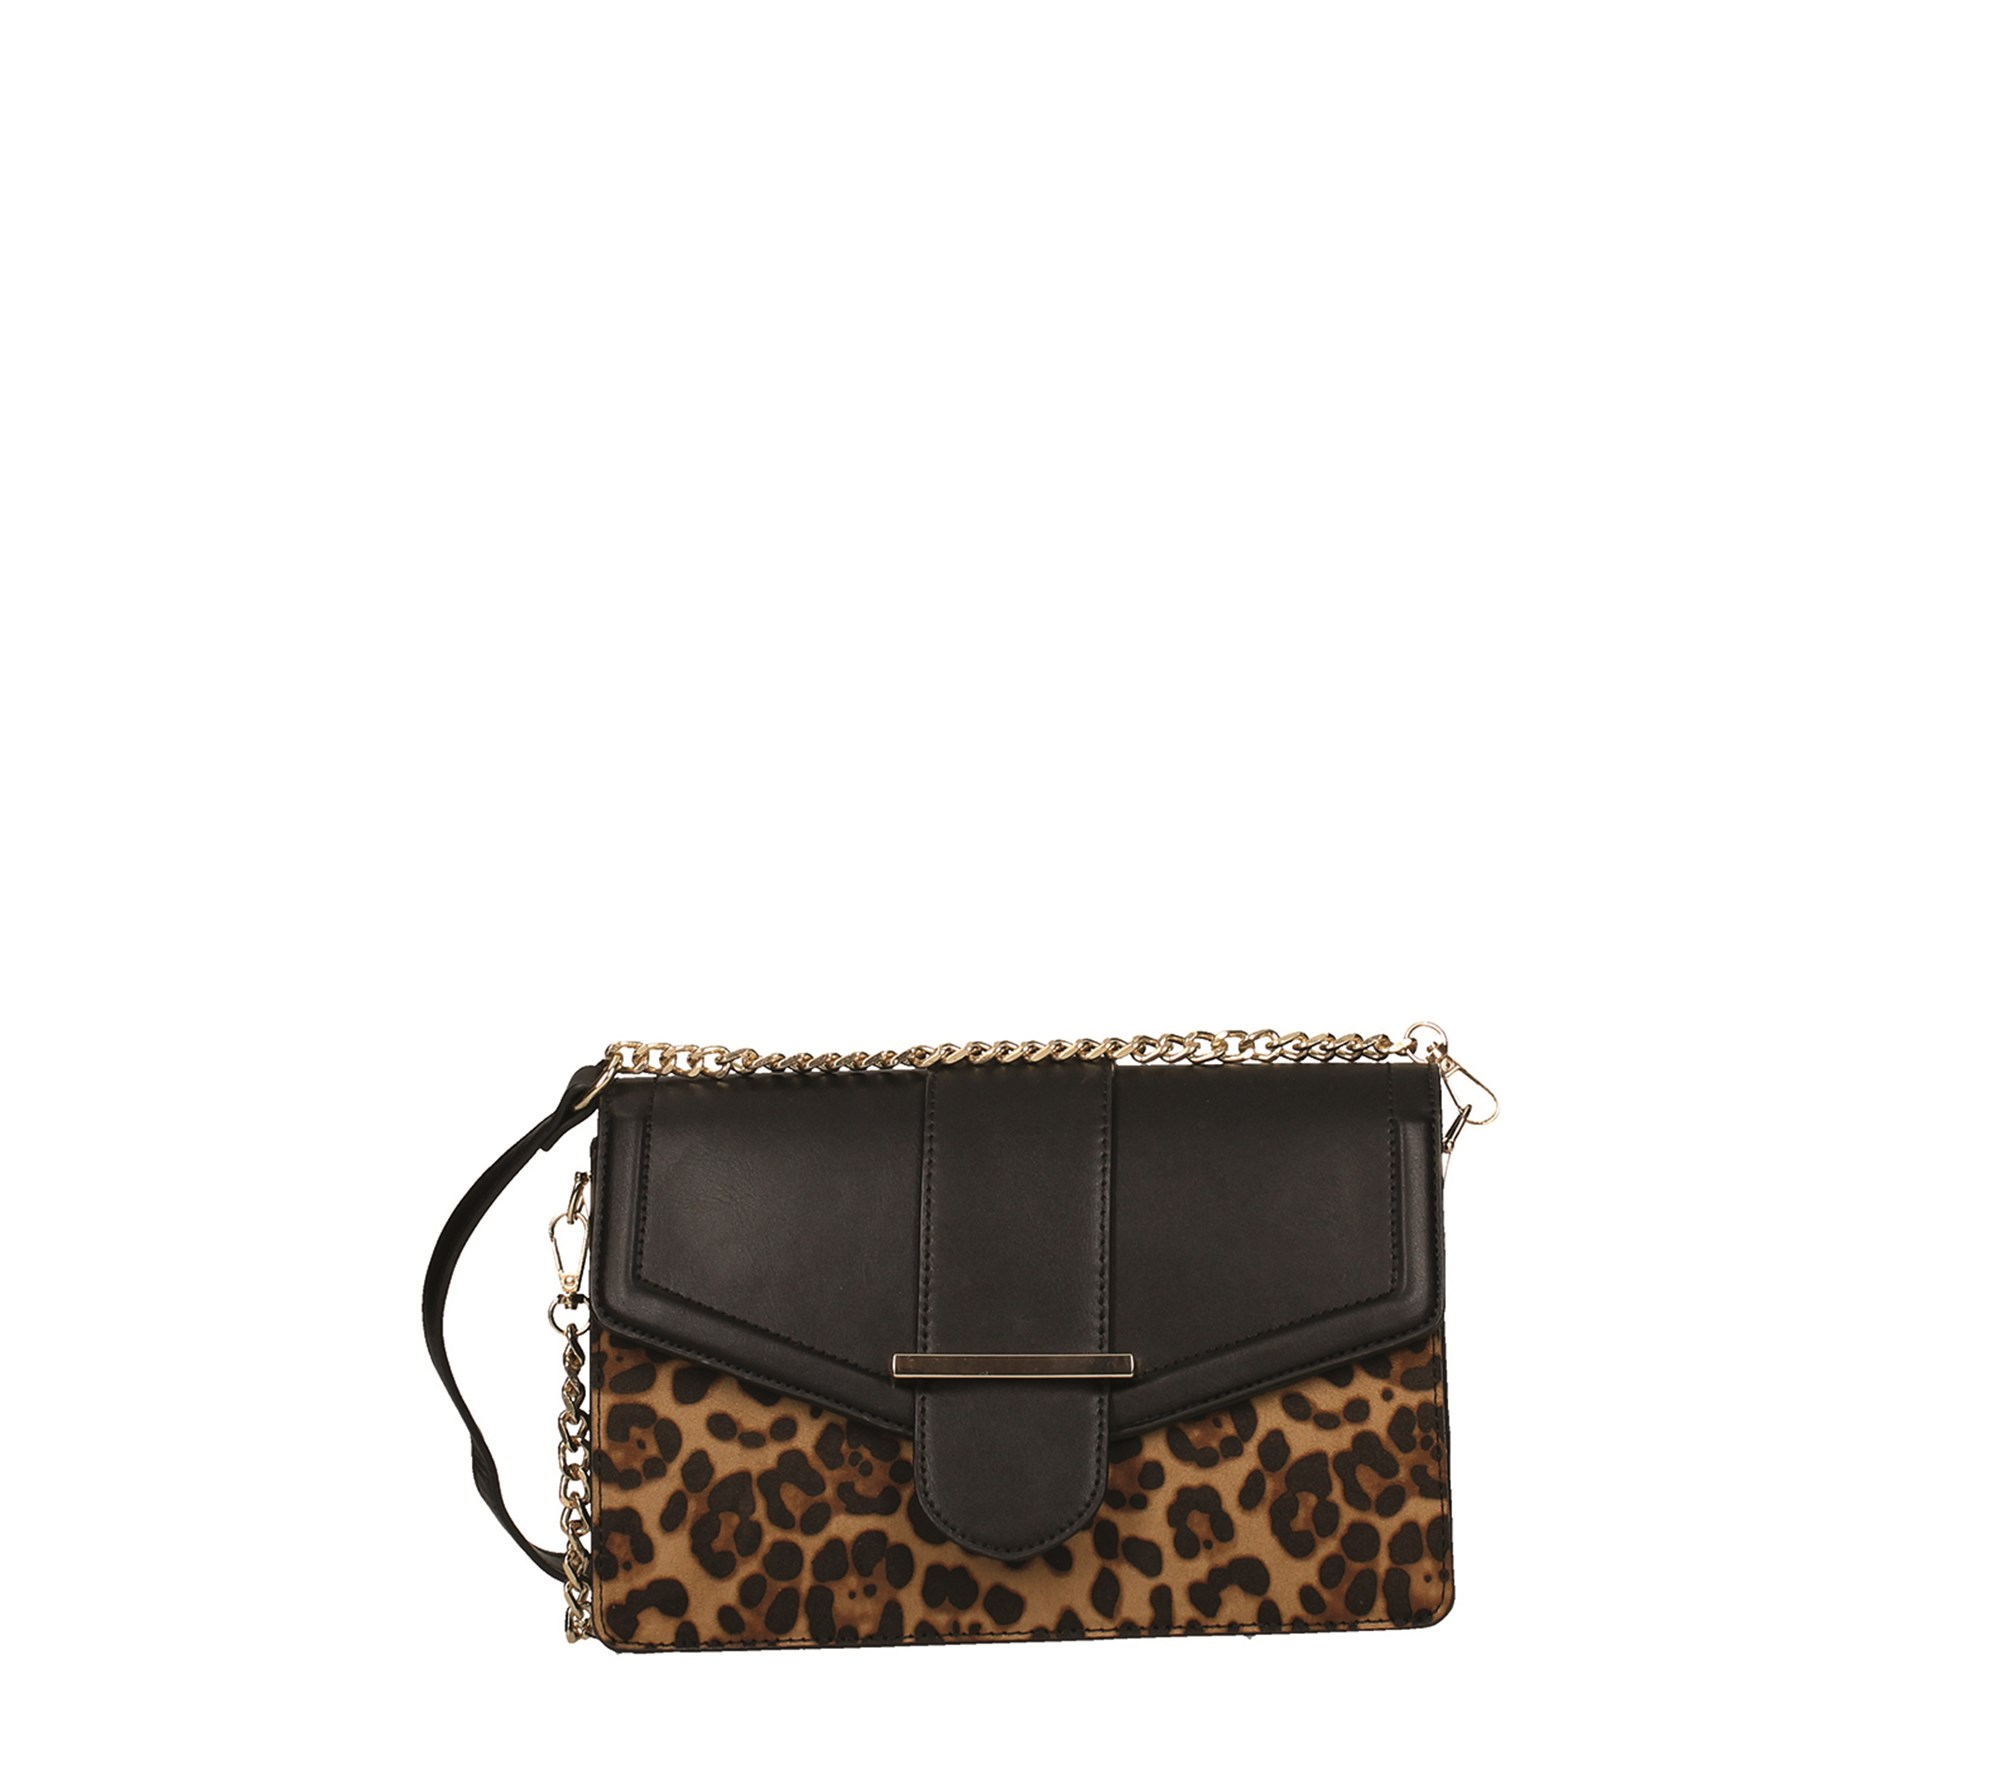 Tata Italia Accessories Woman Bags A WILD CAT 2